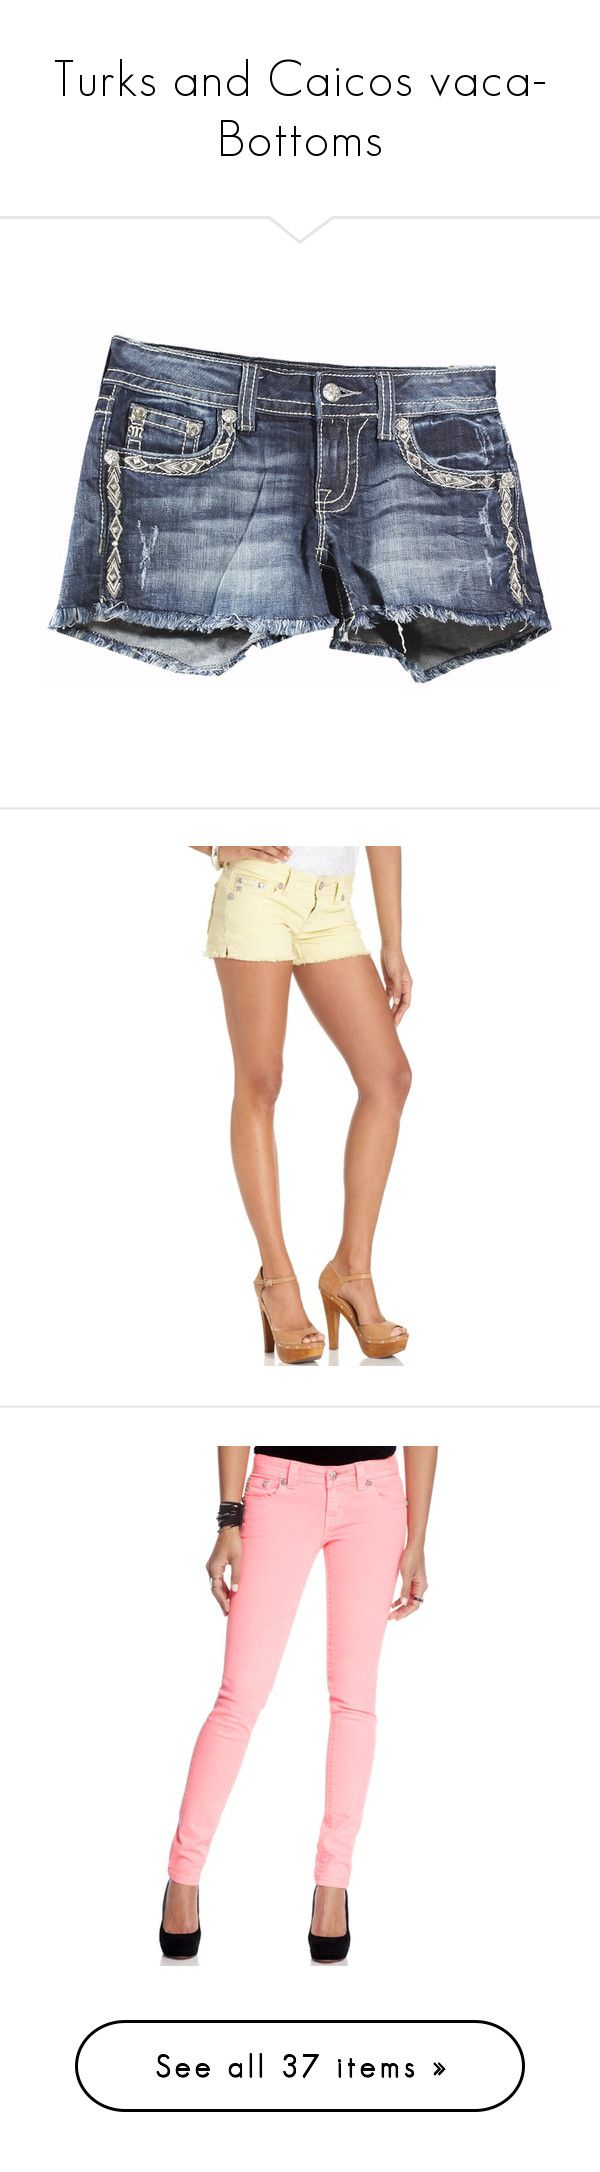 """""""Turks and Caicos vaca- Bottoms"""" by southerngirly-9072 ❤ liked on Polyvore featuring shorts, miss me shorts, denim shorts, cotton shorts, denim short shorts, miss me, pastel yellow, frayed jean shorts, colored denim shorts and low rise jean shorts"""